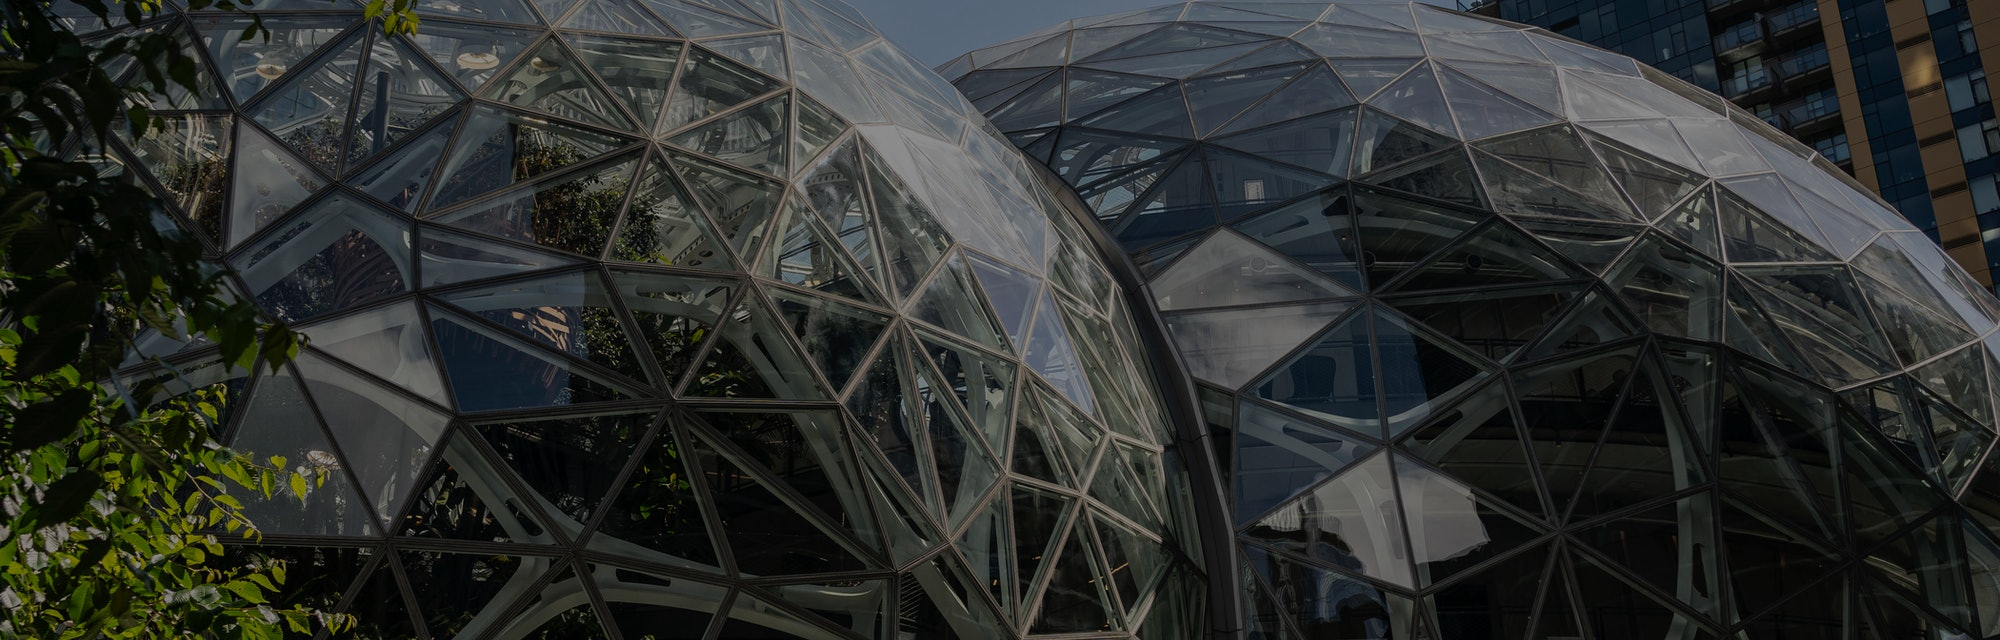 SEATTLE, WA - MAY 20: The exterior of The Spheres is seen at the Amazon.com Inc. headquarters on May...